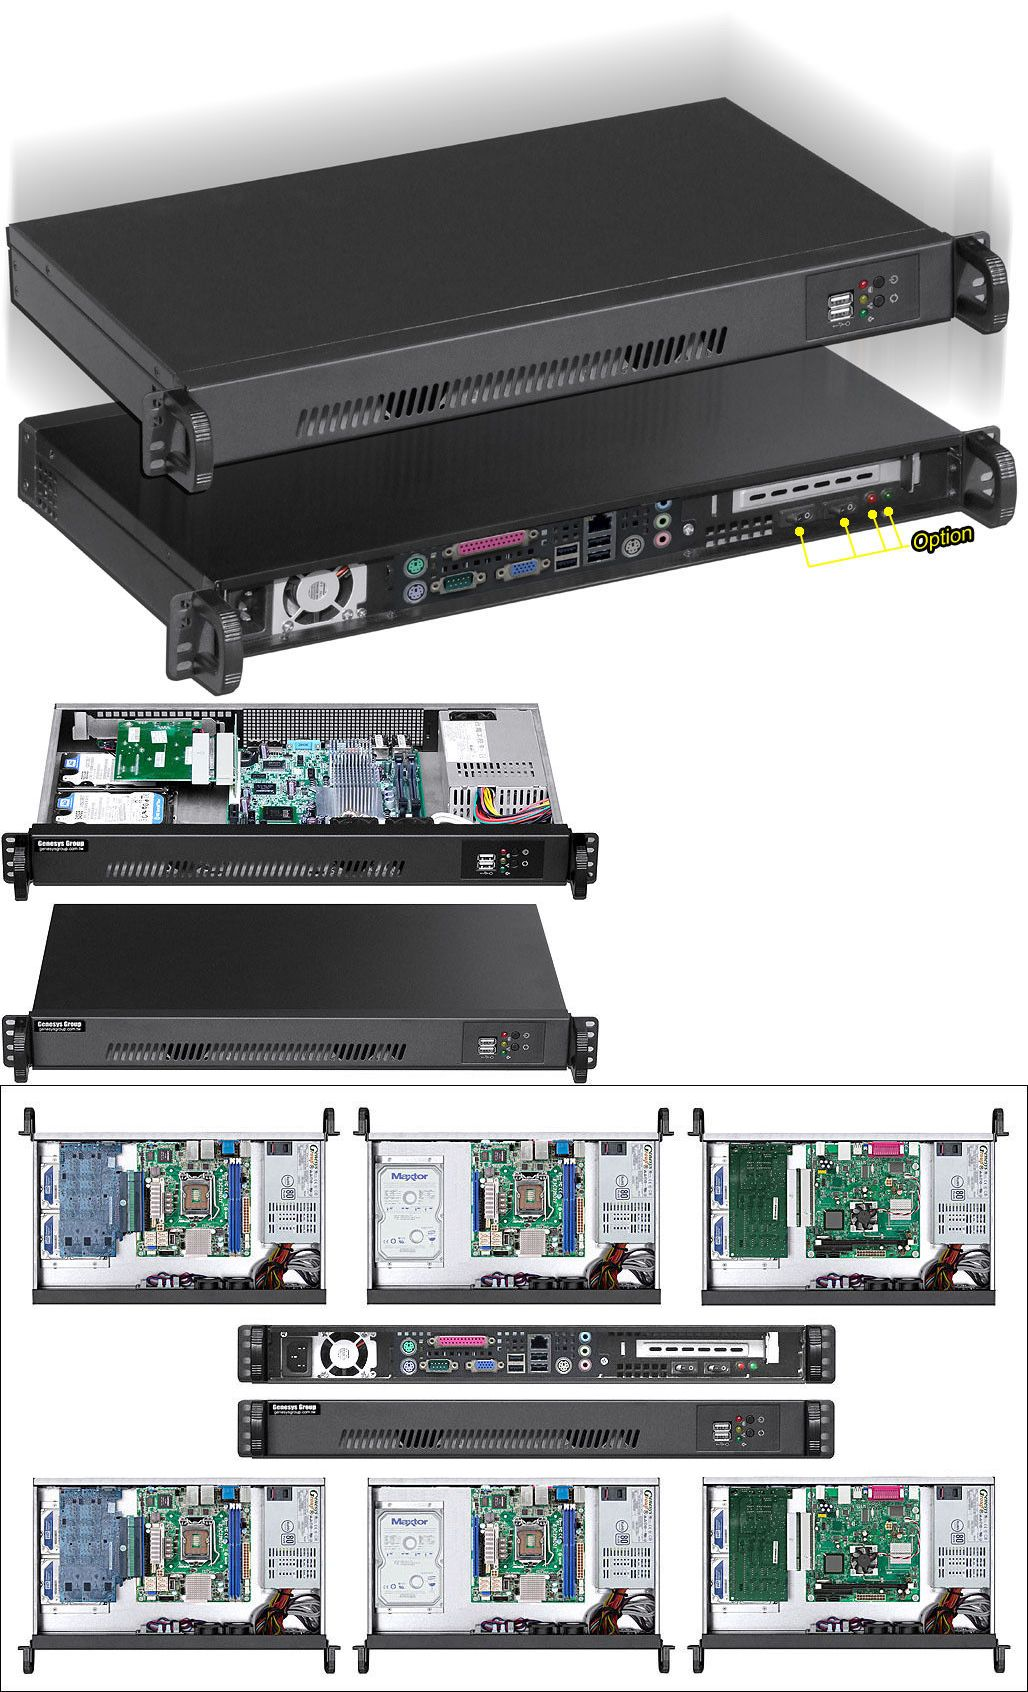 Rackmount Cases And Chassis 64061 1u 250w Psu Mini Itx Case D 9 84 2 X Hdd 2x4cm Fans Rackmount Chassis New Buy It Now Only 77 9 Mini Itx Hdd Mini